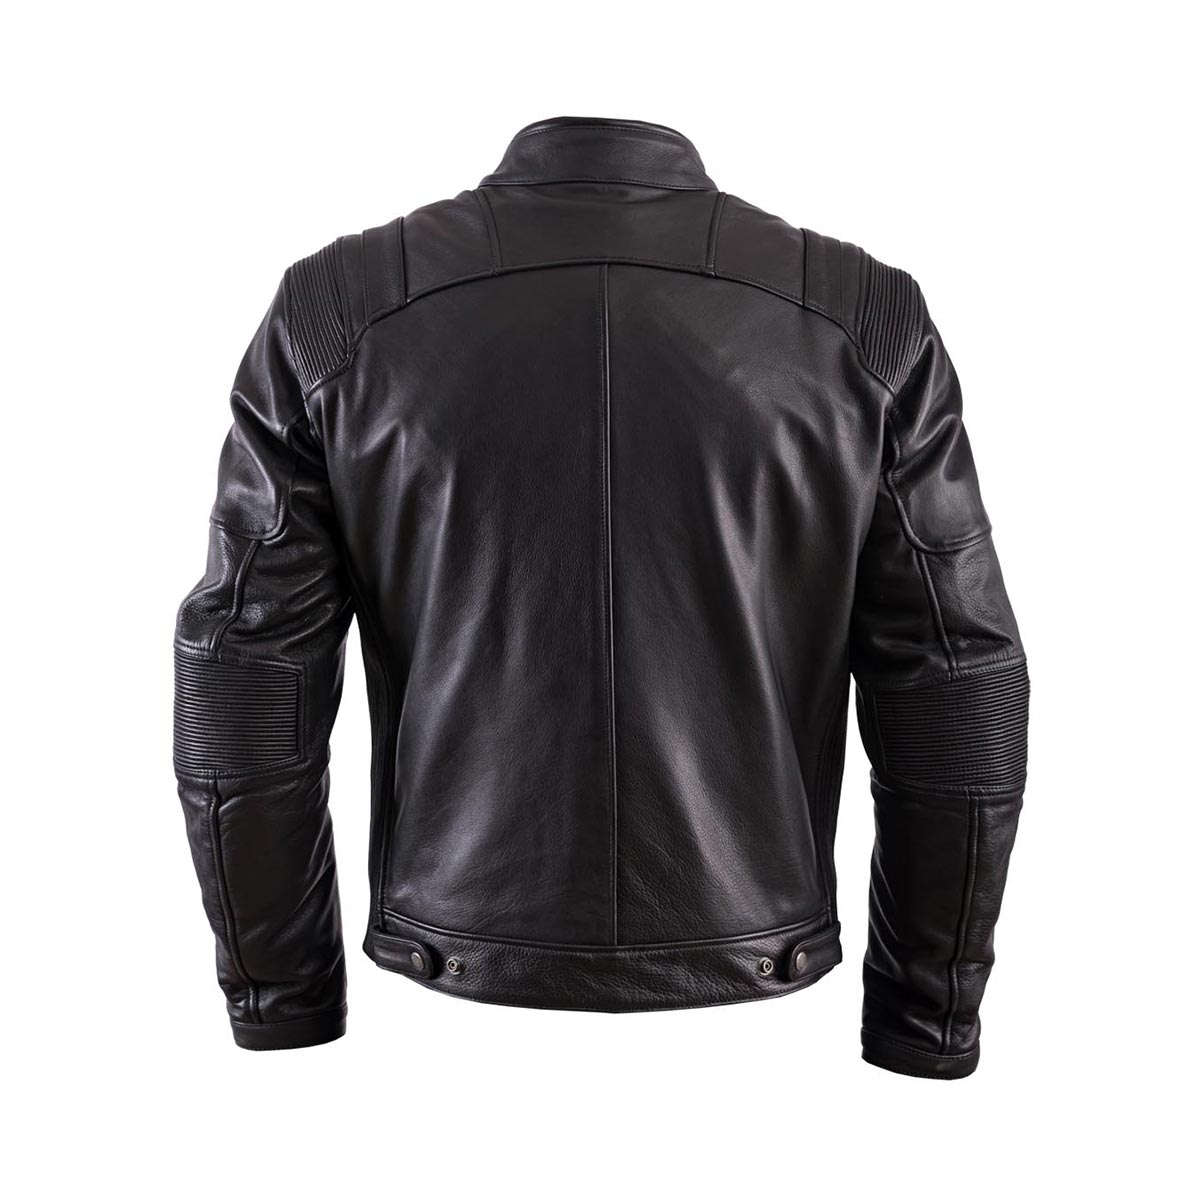 Helstons Trust Black Leather Jacket